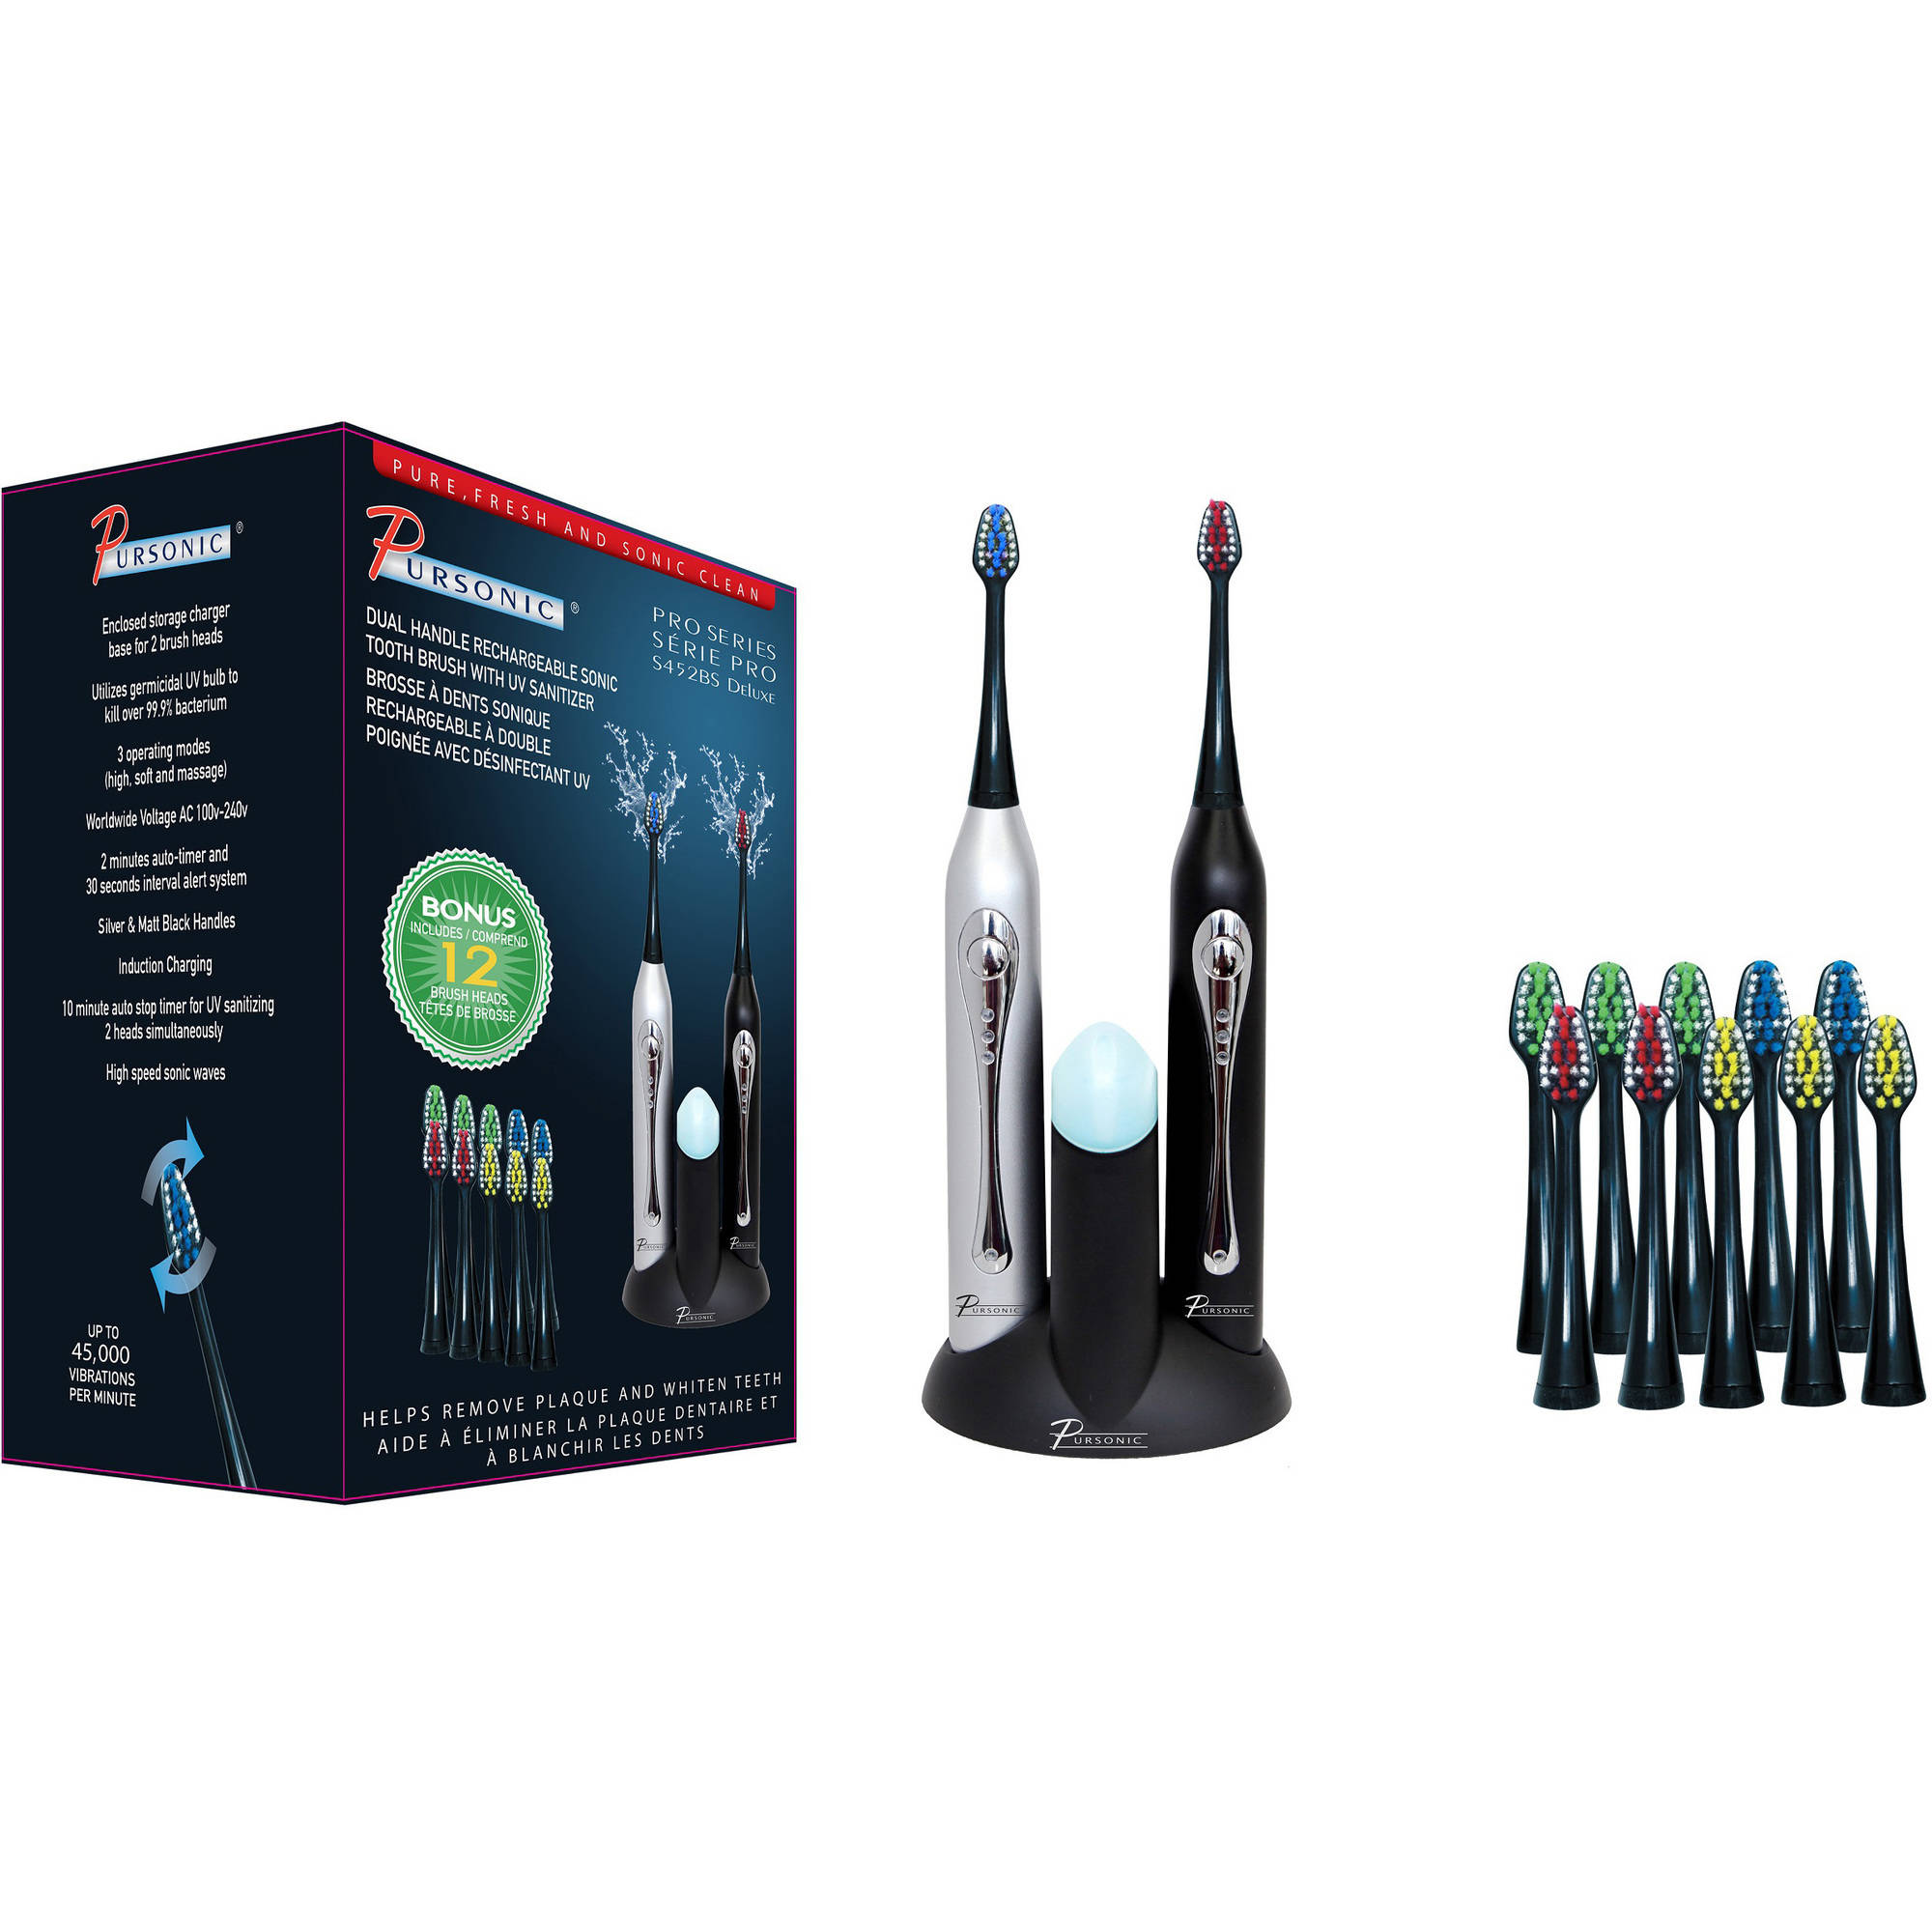 Pursonic Pro Series Deluxe Dual Handle Rechargeable Sonic Toothbrush with UV Sanitizer, S452BS